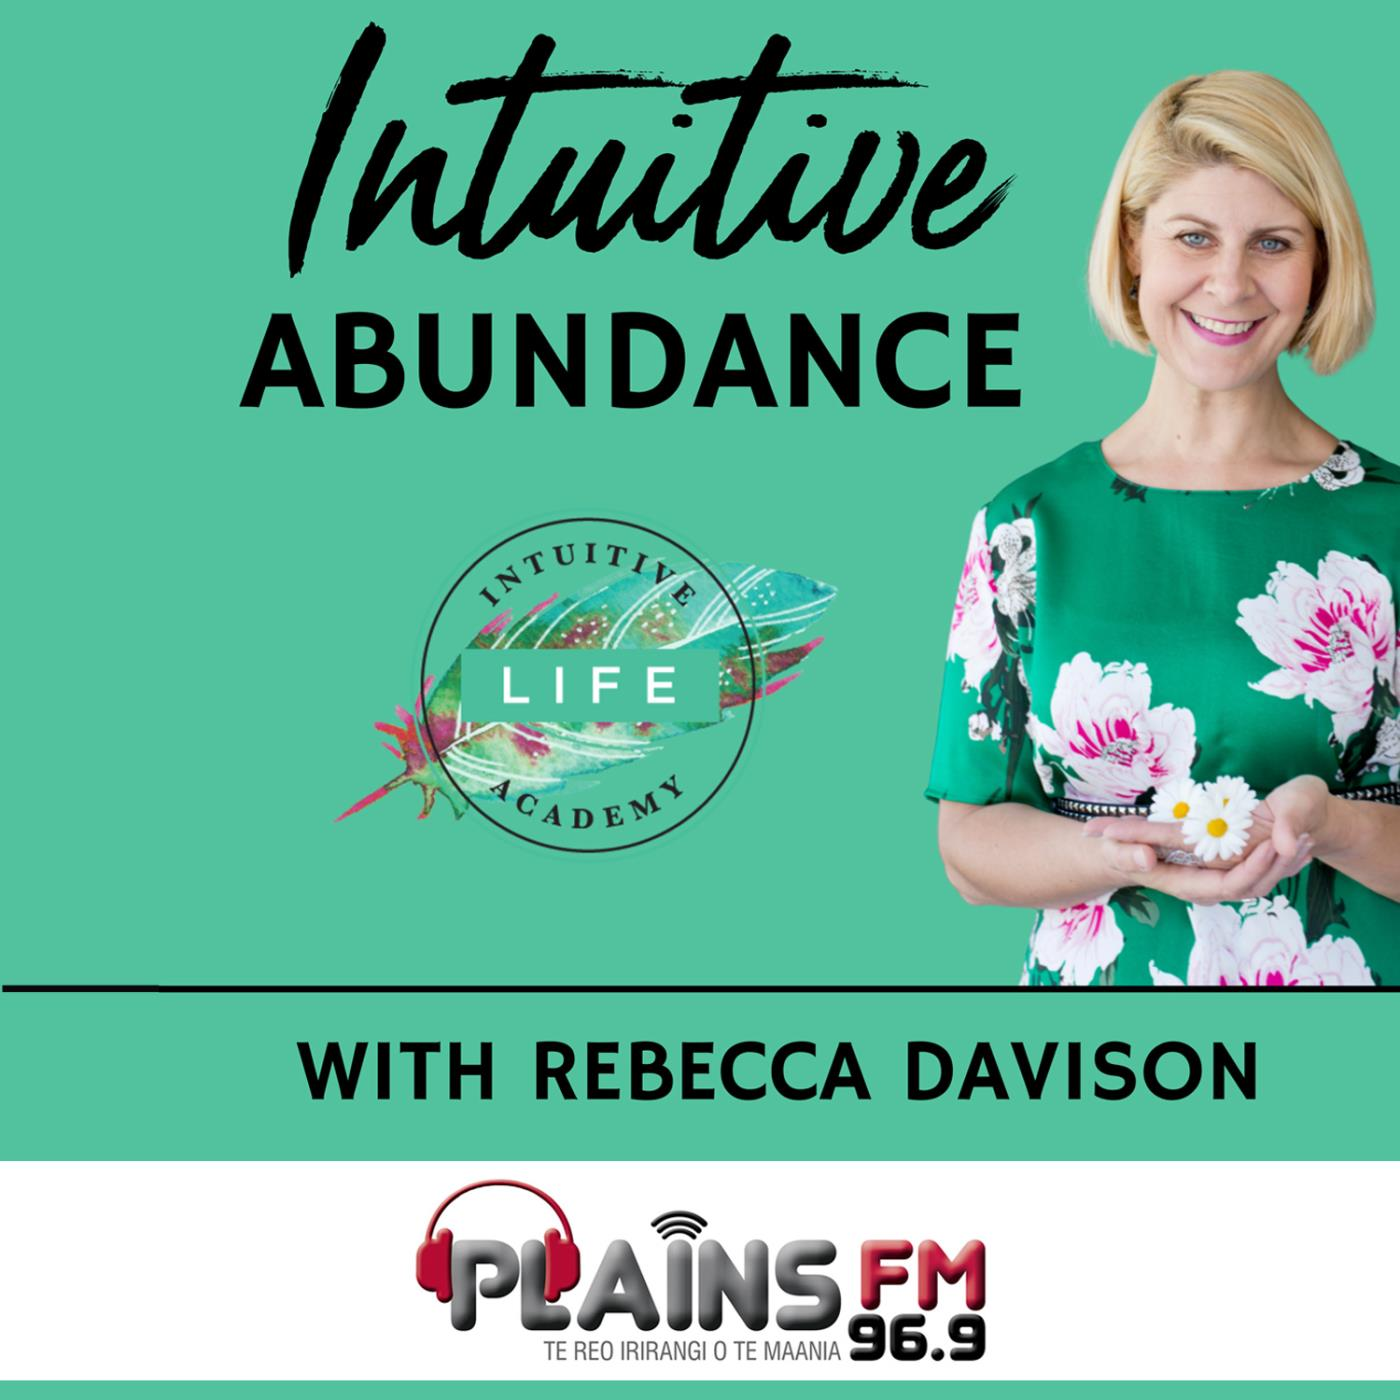 Intuitive Abundance - Fundamentals of Manifestation - Being Able to Receive